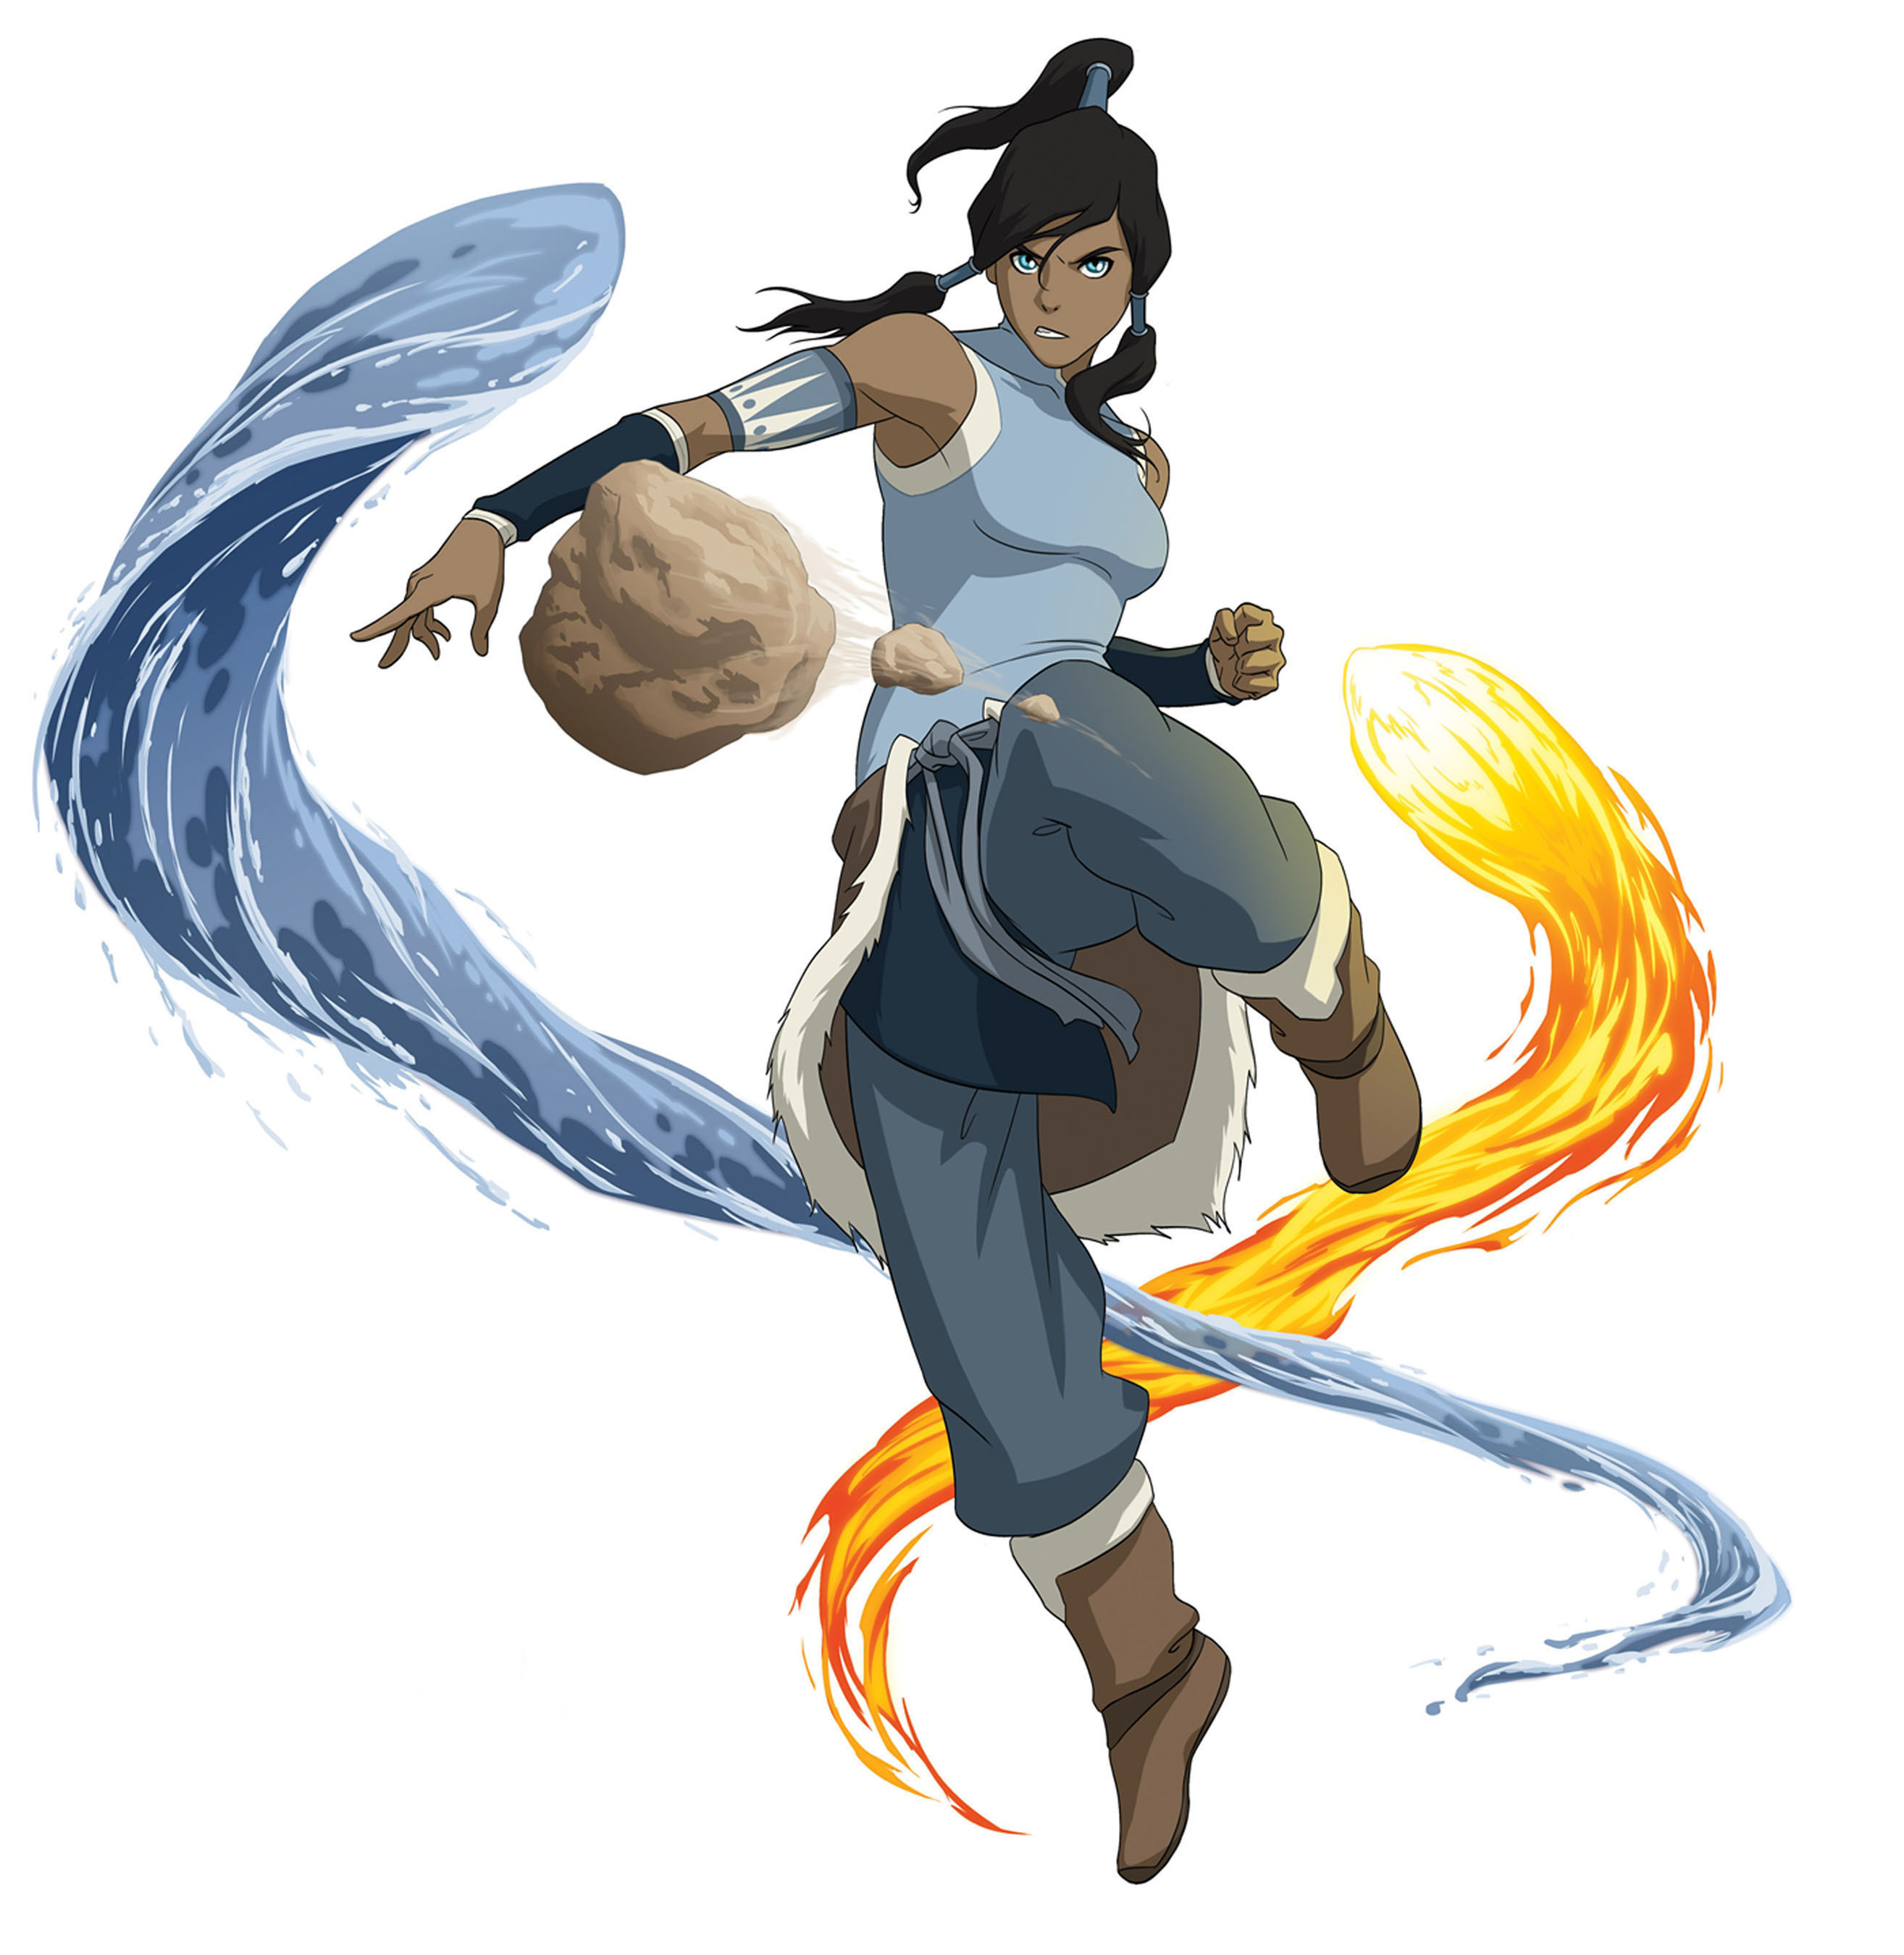 NICKELODEON LEGEND OF KORRA